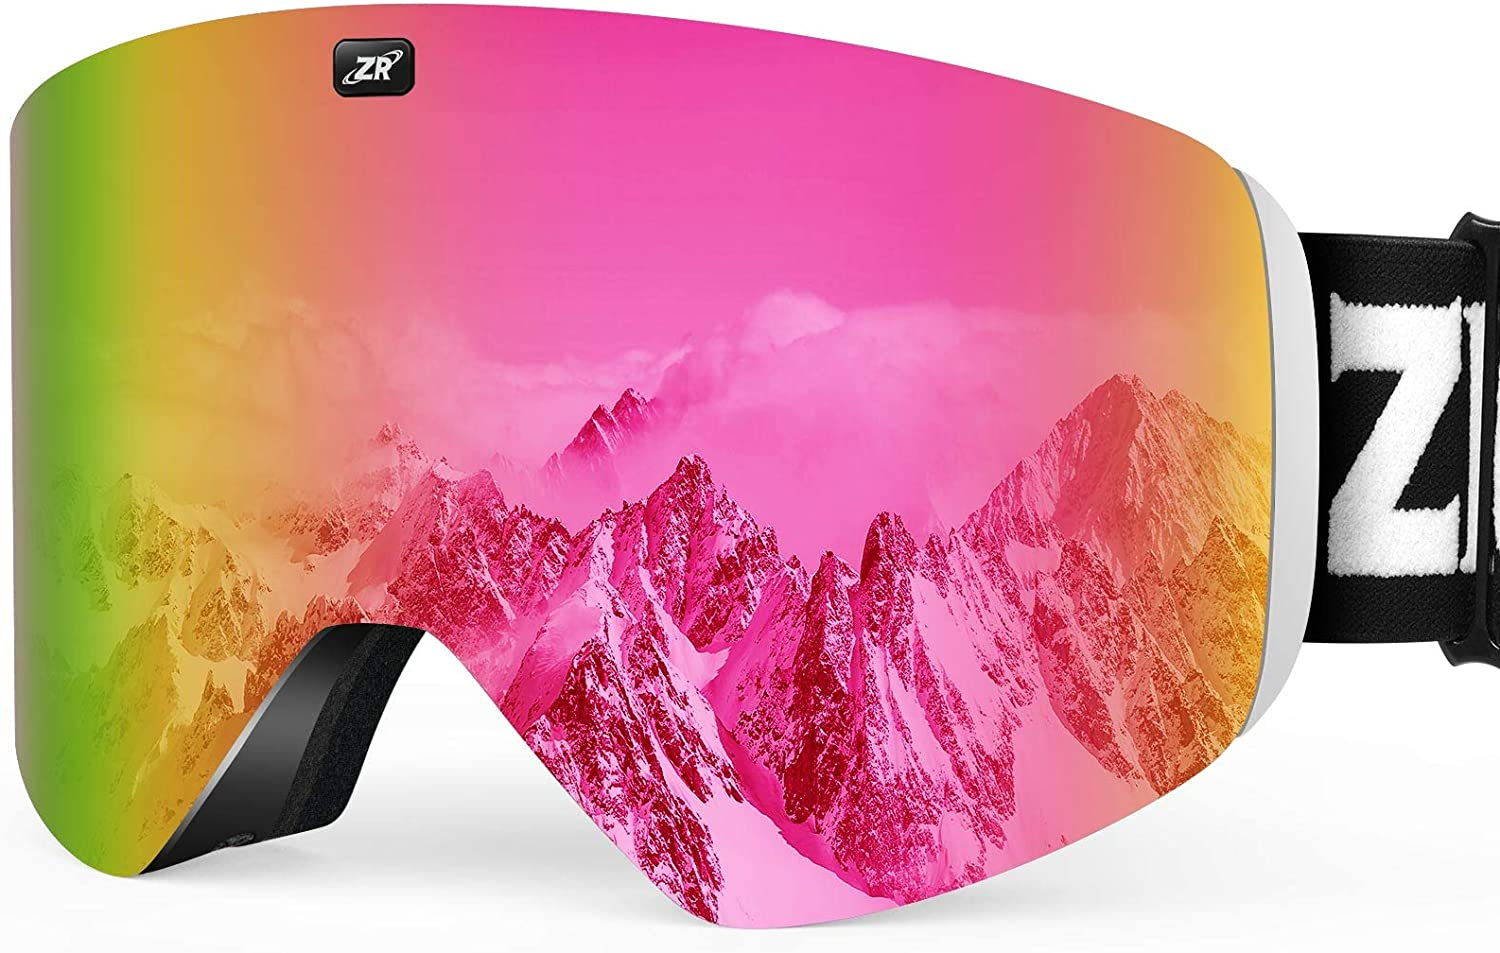 ZIONOR X11 Ski Goggles Ranking integrated 1st place Magnetic Cylindrical Snow Goggl Snowboard Many popular brands